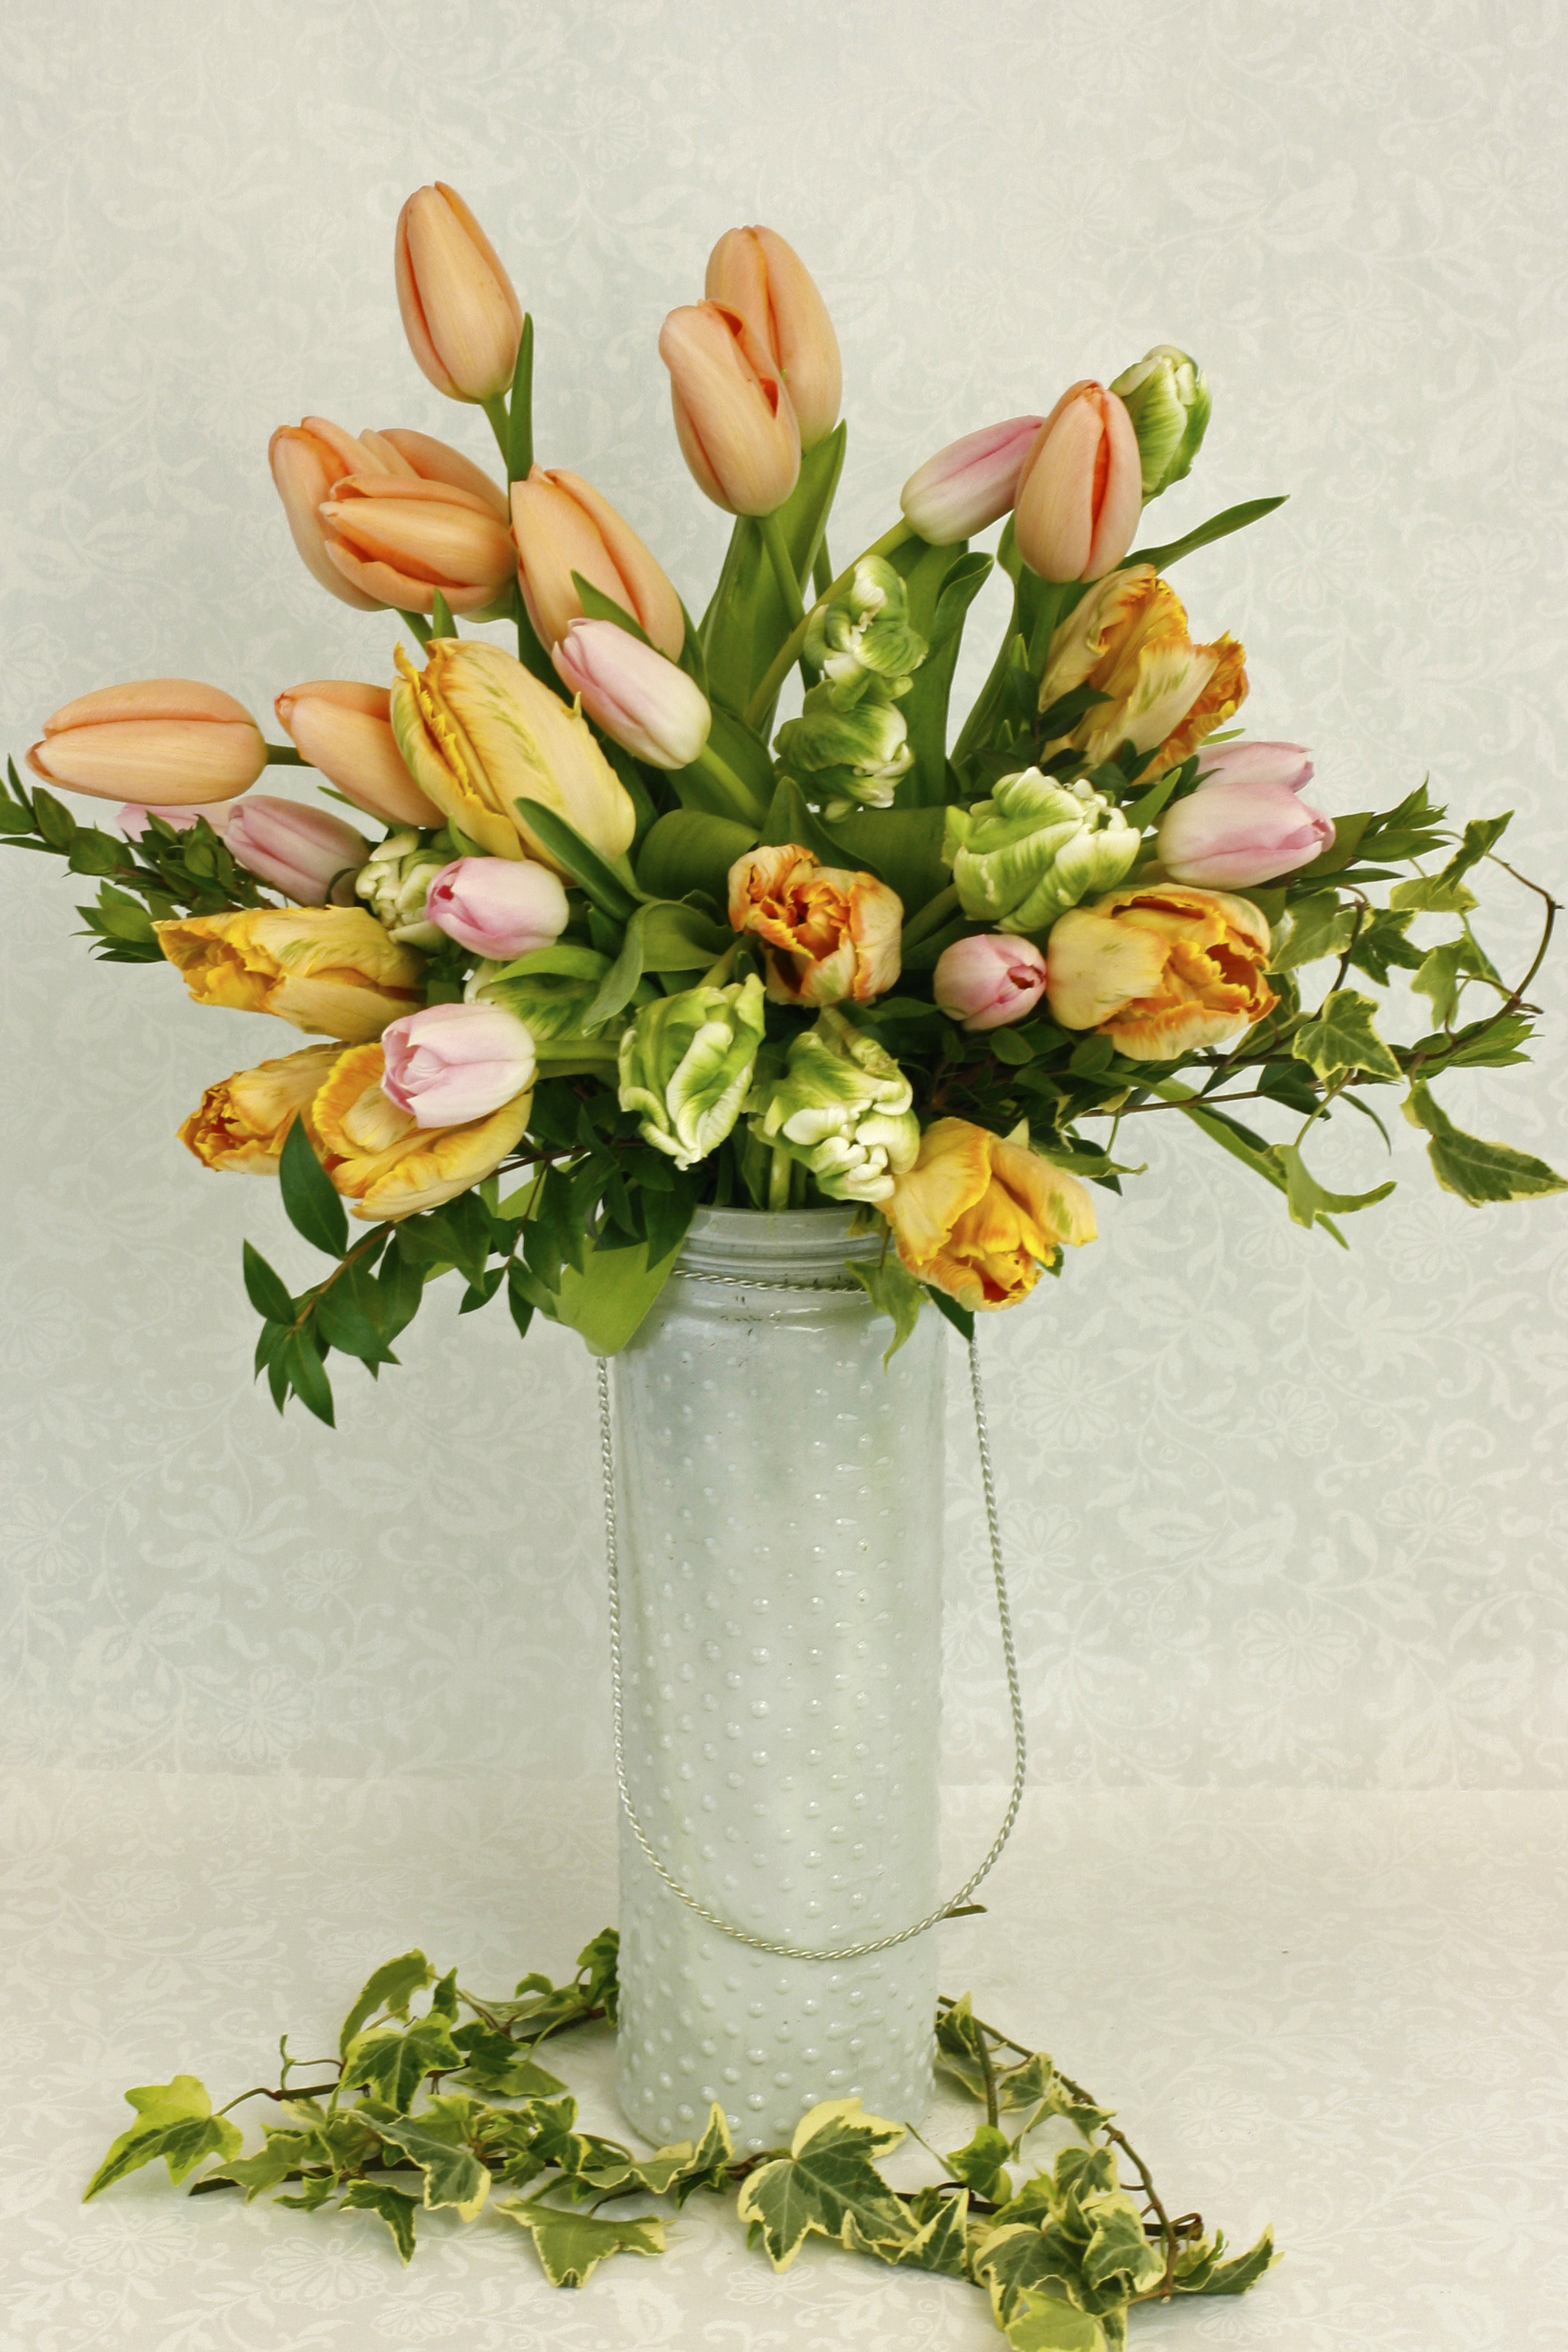 Elegant tulips in a stylish modern container. French Tulips, Parrot Tulips, and more!